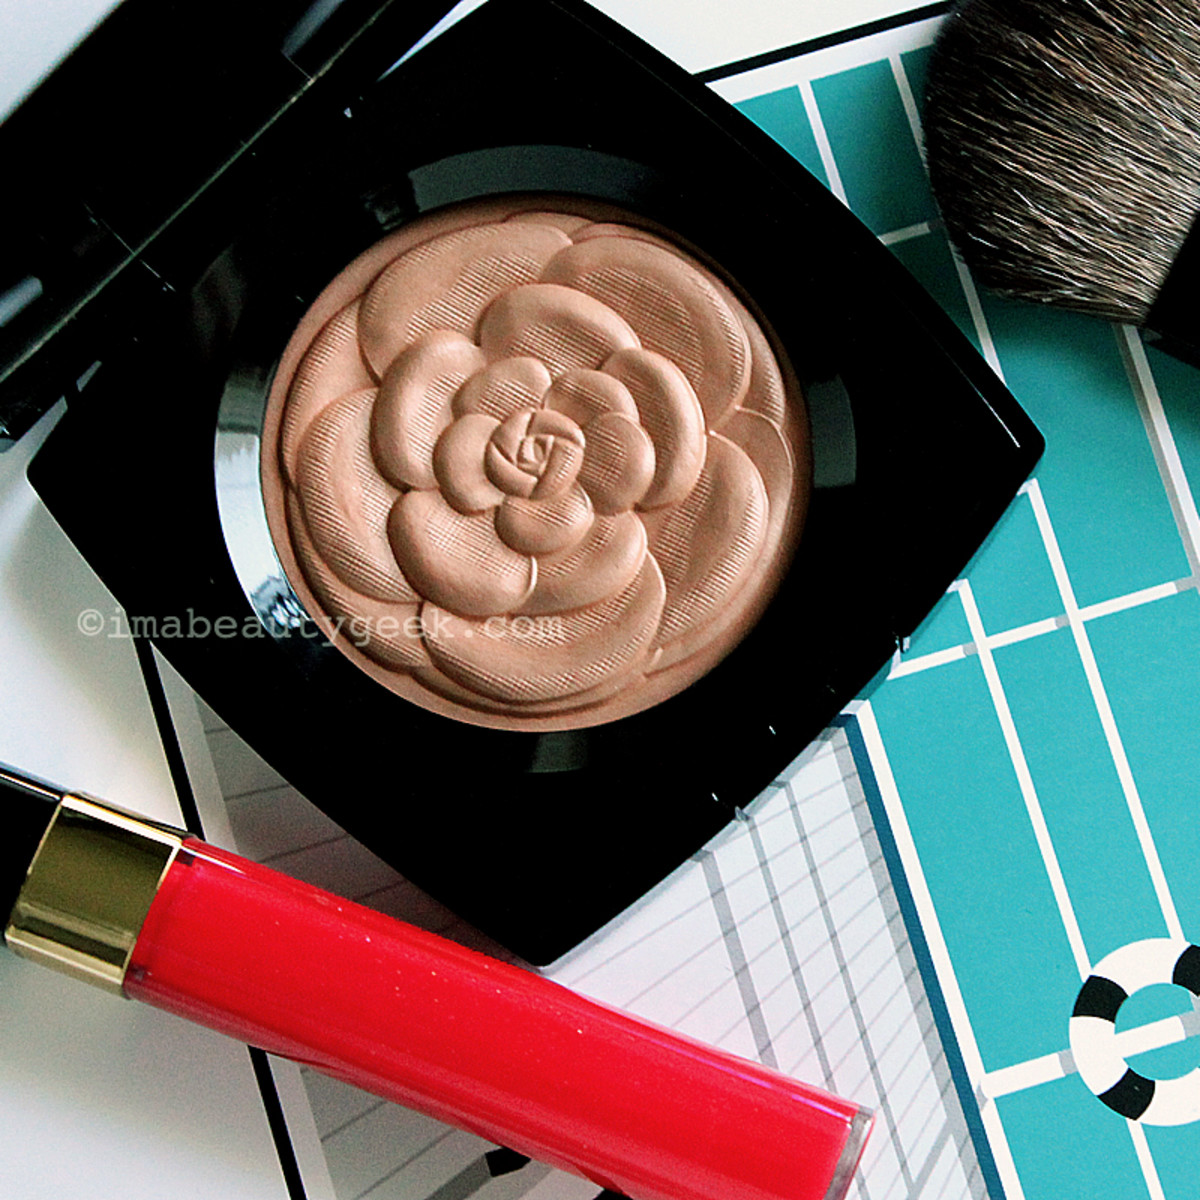 See? This Chanel Lumière d'Eté powder is just too pretty to mess up with a brush, I thought...